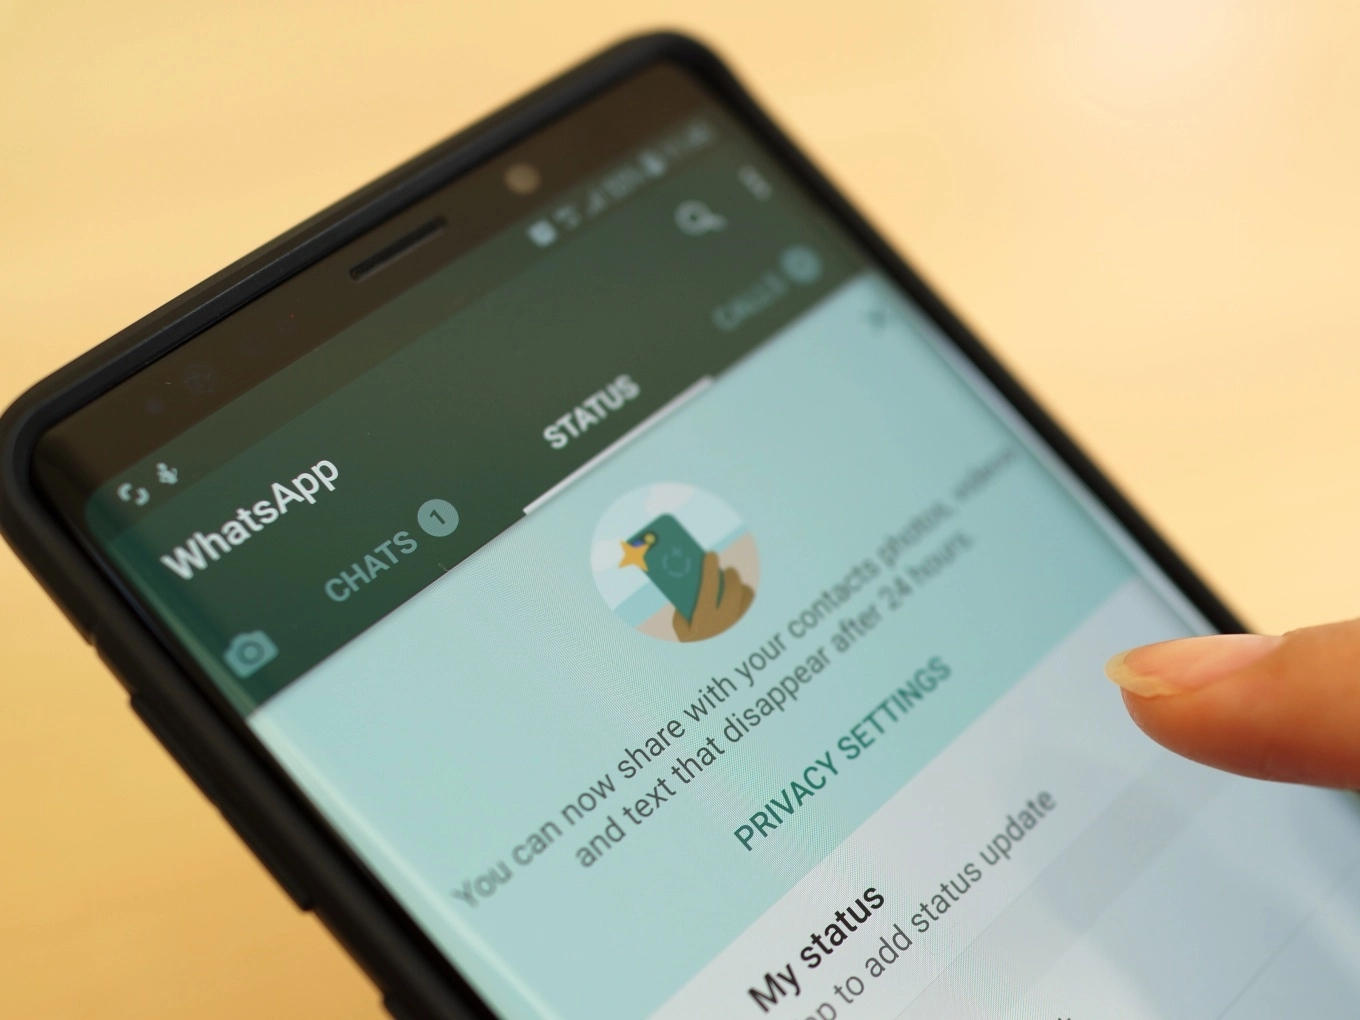 New Whatsapp privacy rules